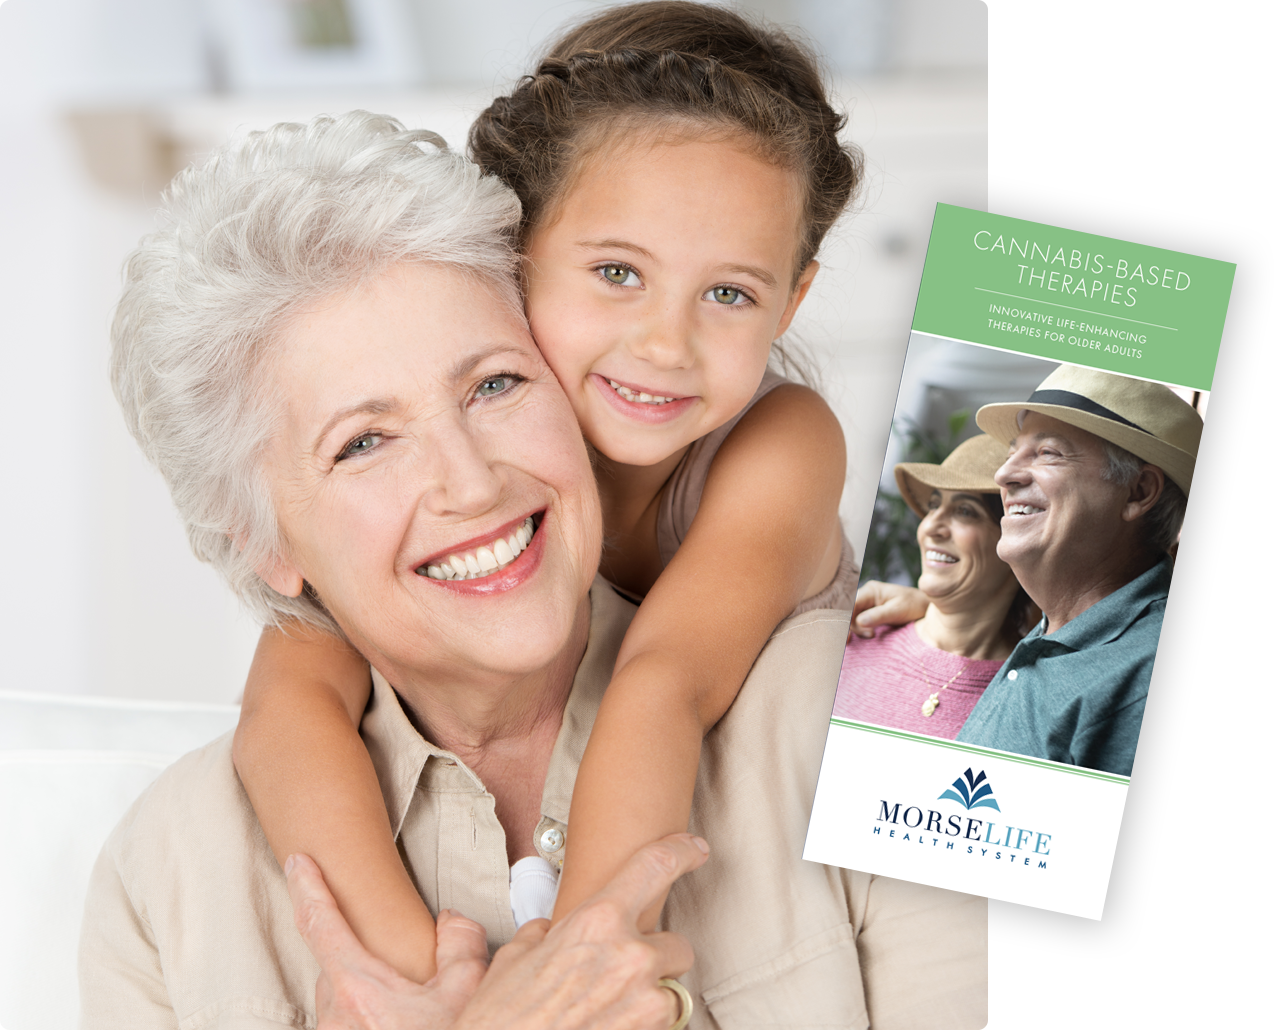 Cannabis-based therapies treatment brochure cover image with patient and grandchild